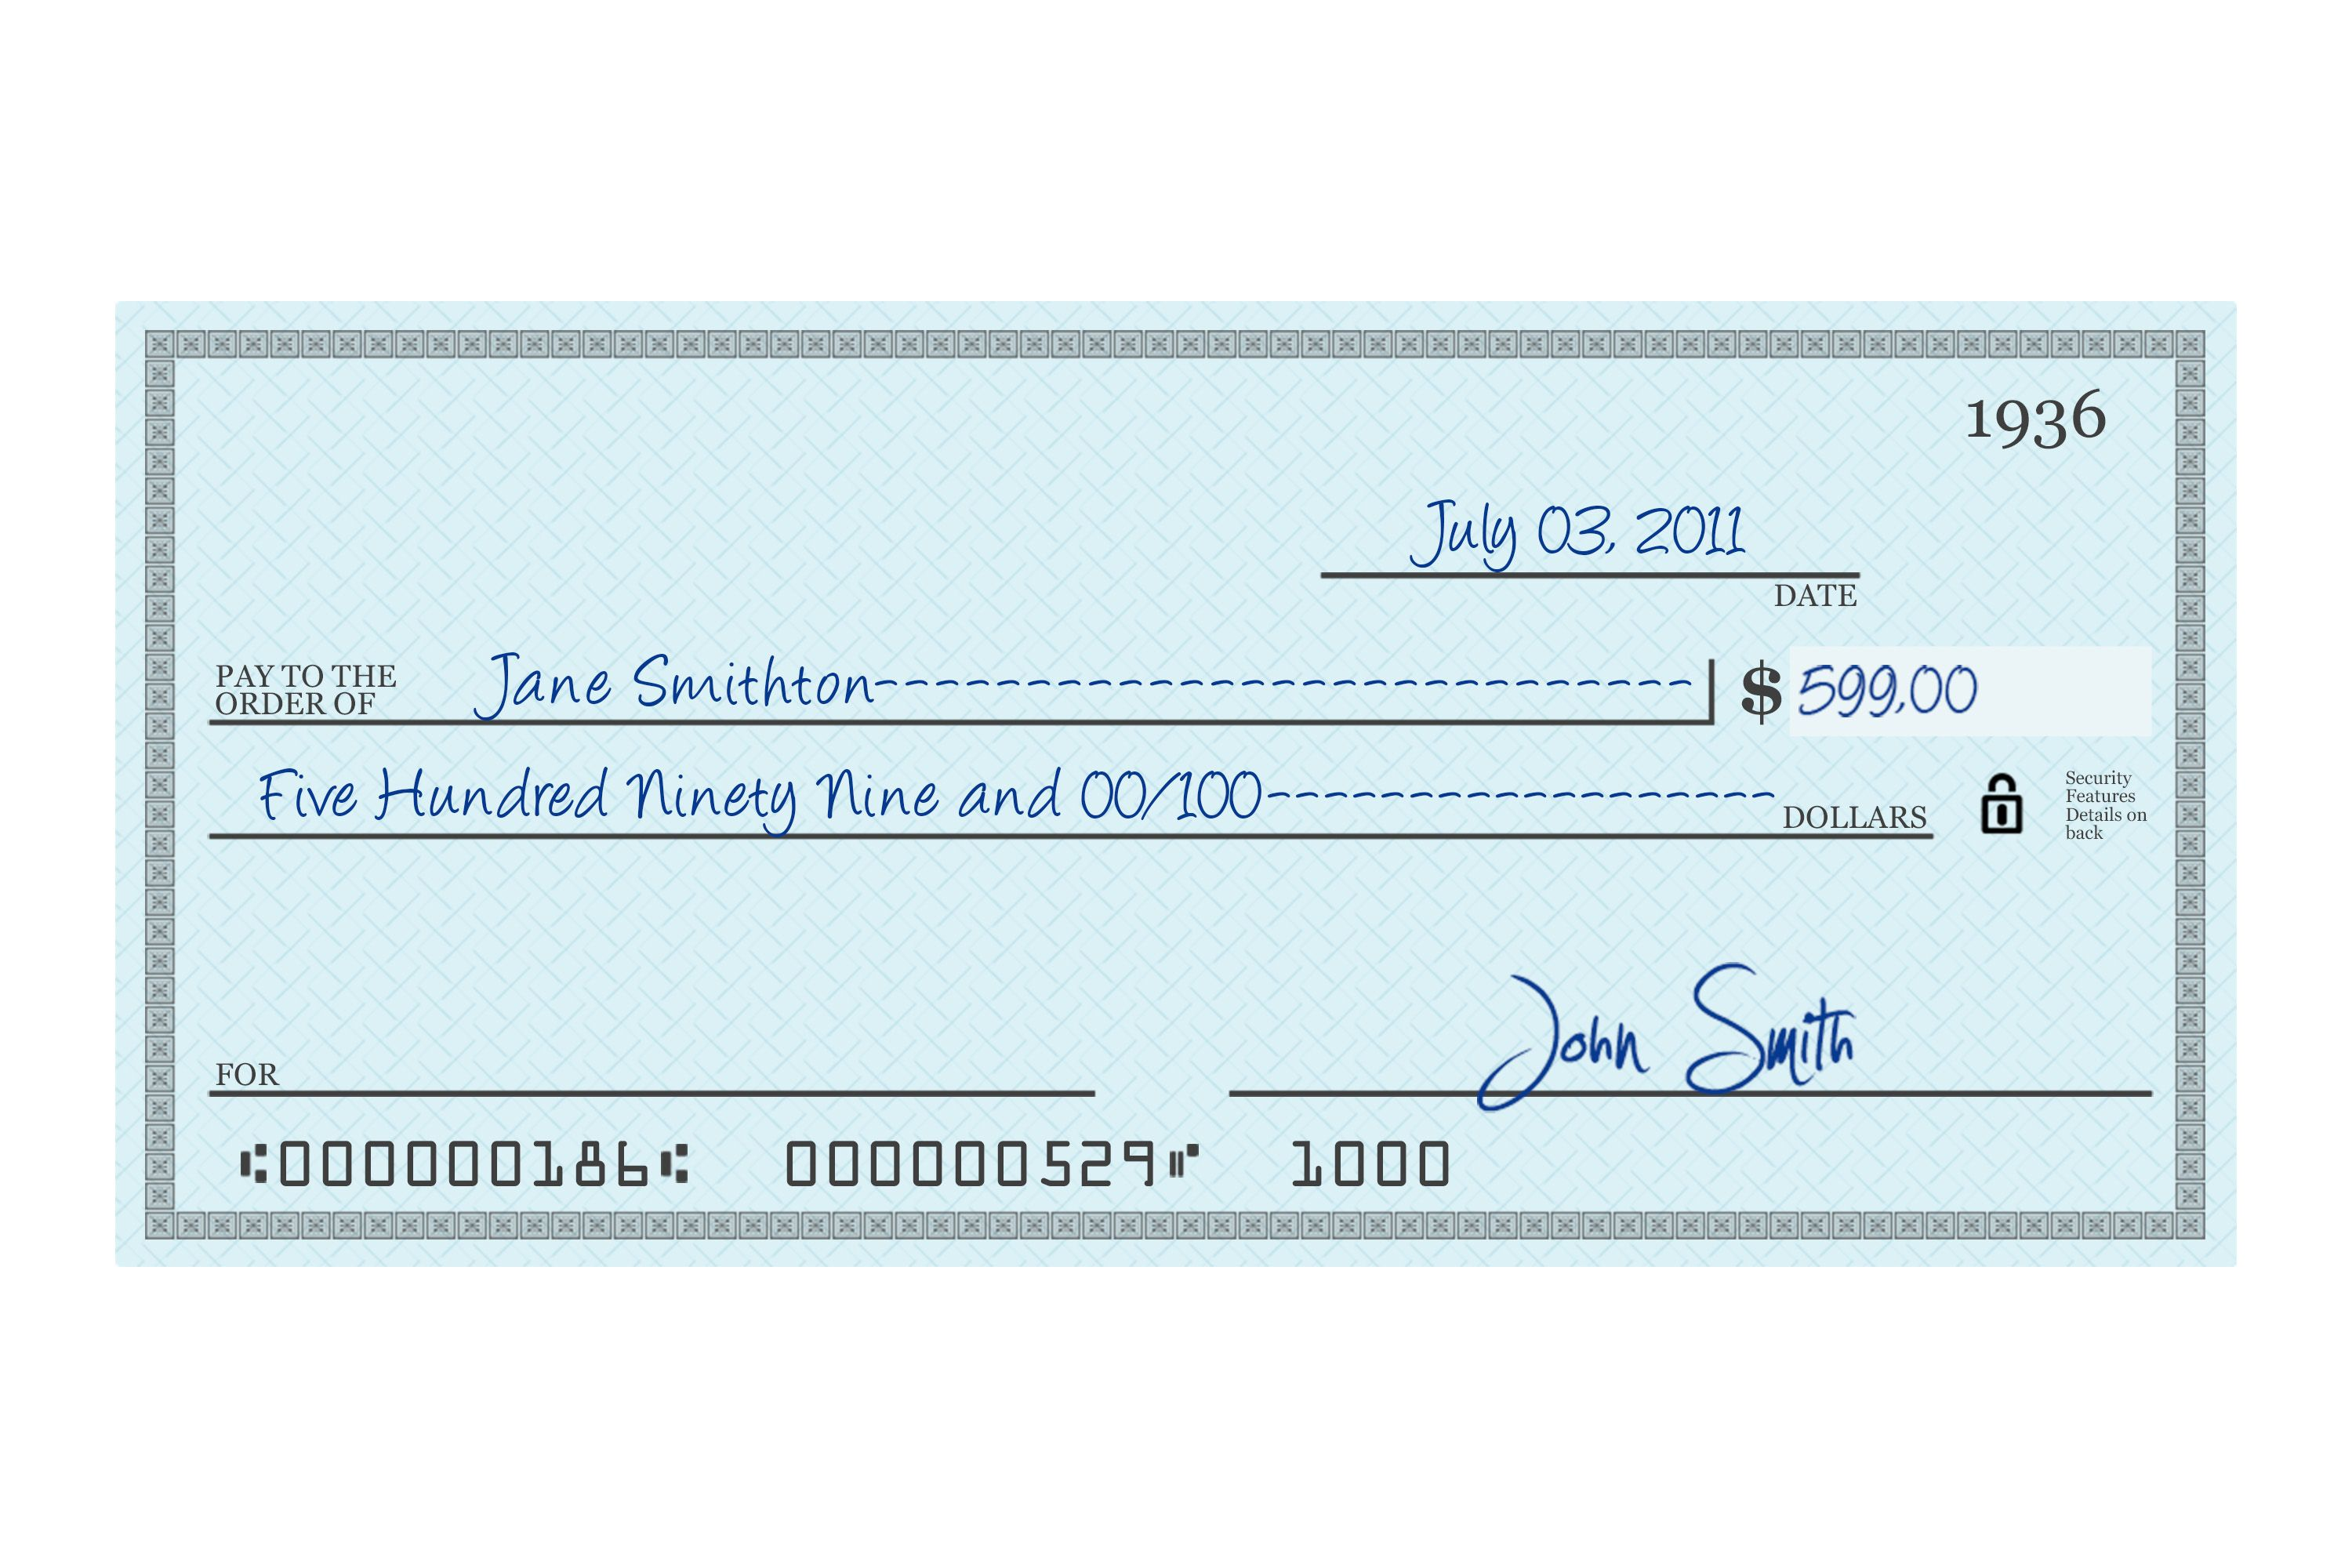 How Do U Write A Check For 600 Dollars?